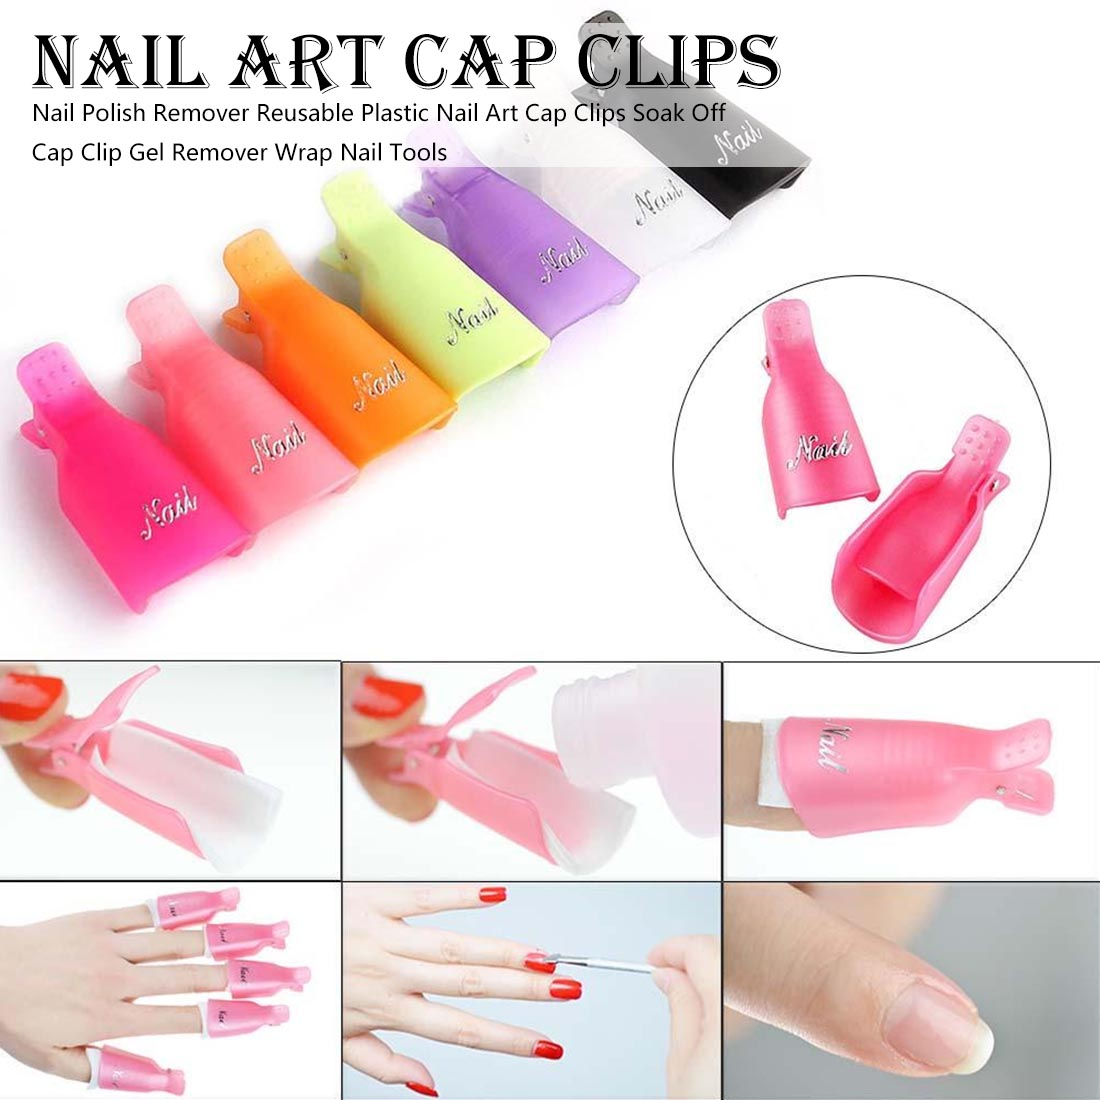 Image 2 - 10pcs UV Gel Remover Cap Clips for Gel Varnish Degreaser for Nails Manicure Clamps Plastic Acrylic Nail Art Soak Off Clip Cap-in Nail Polish Remover from Beauty & Health